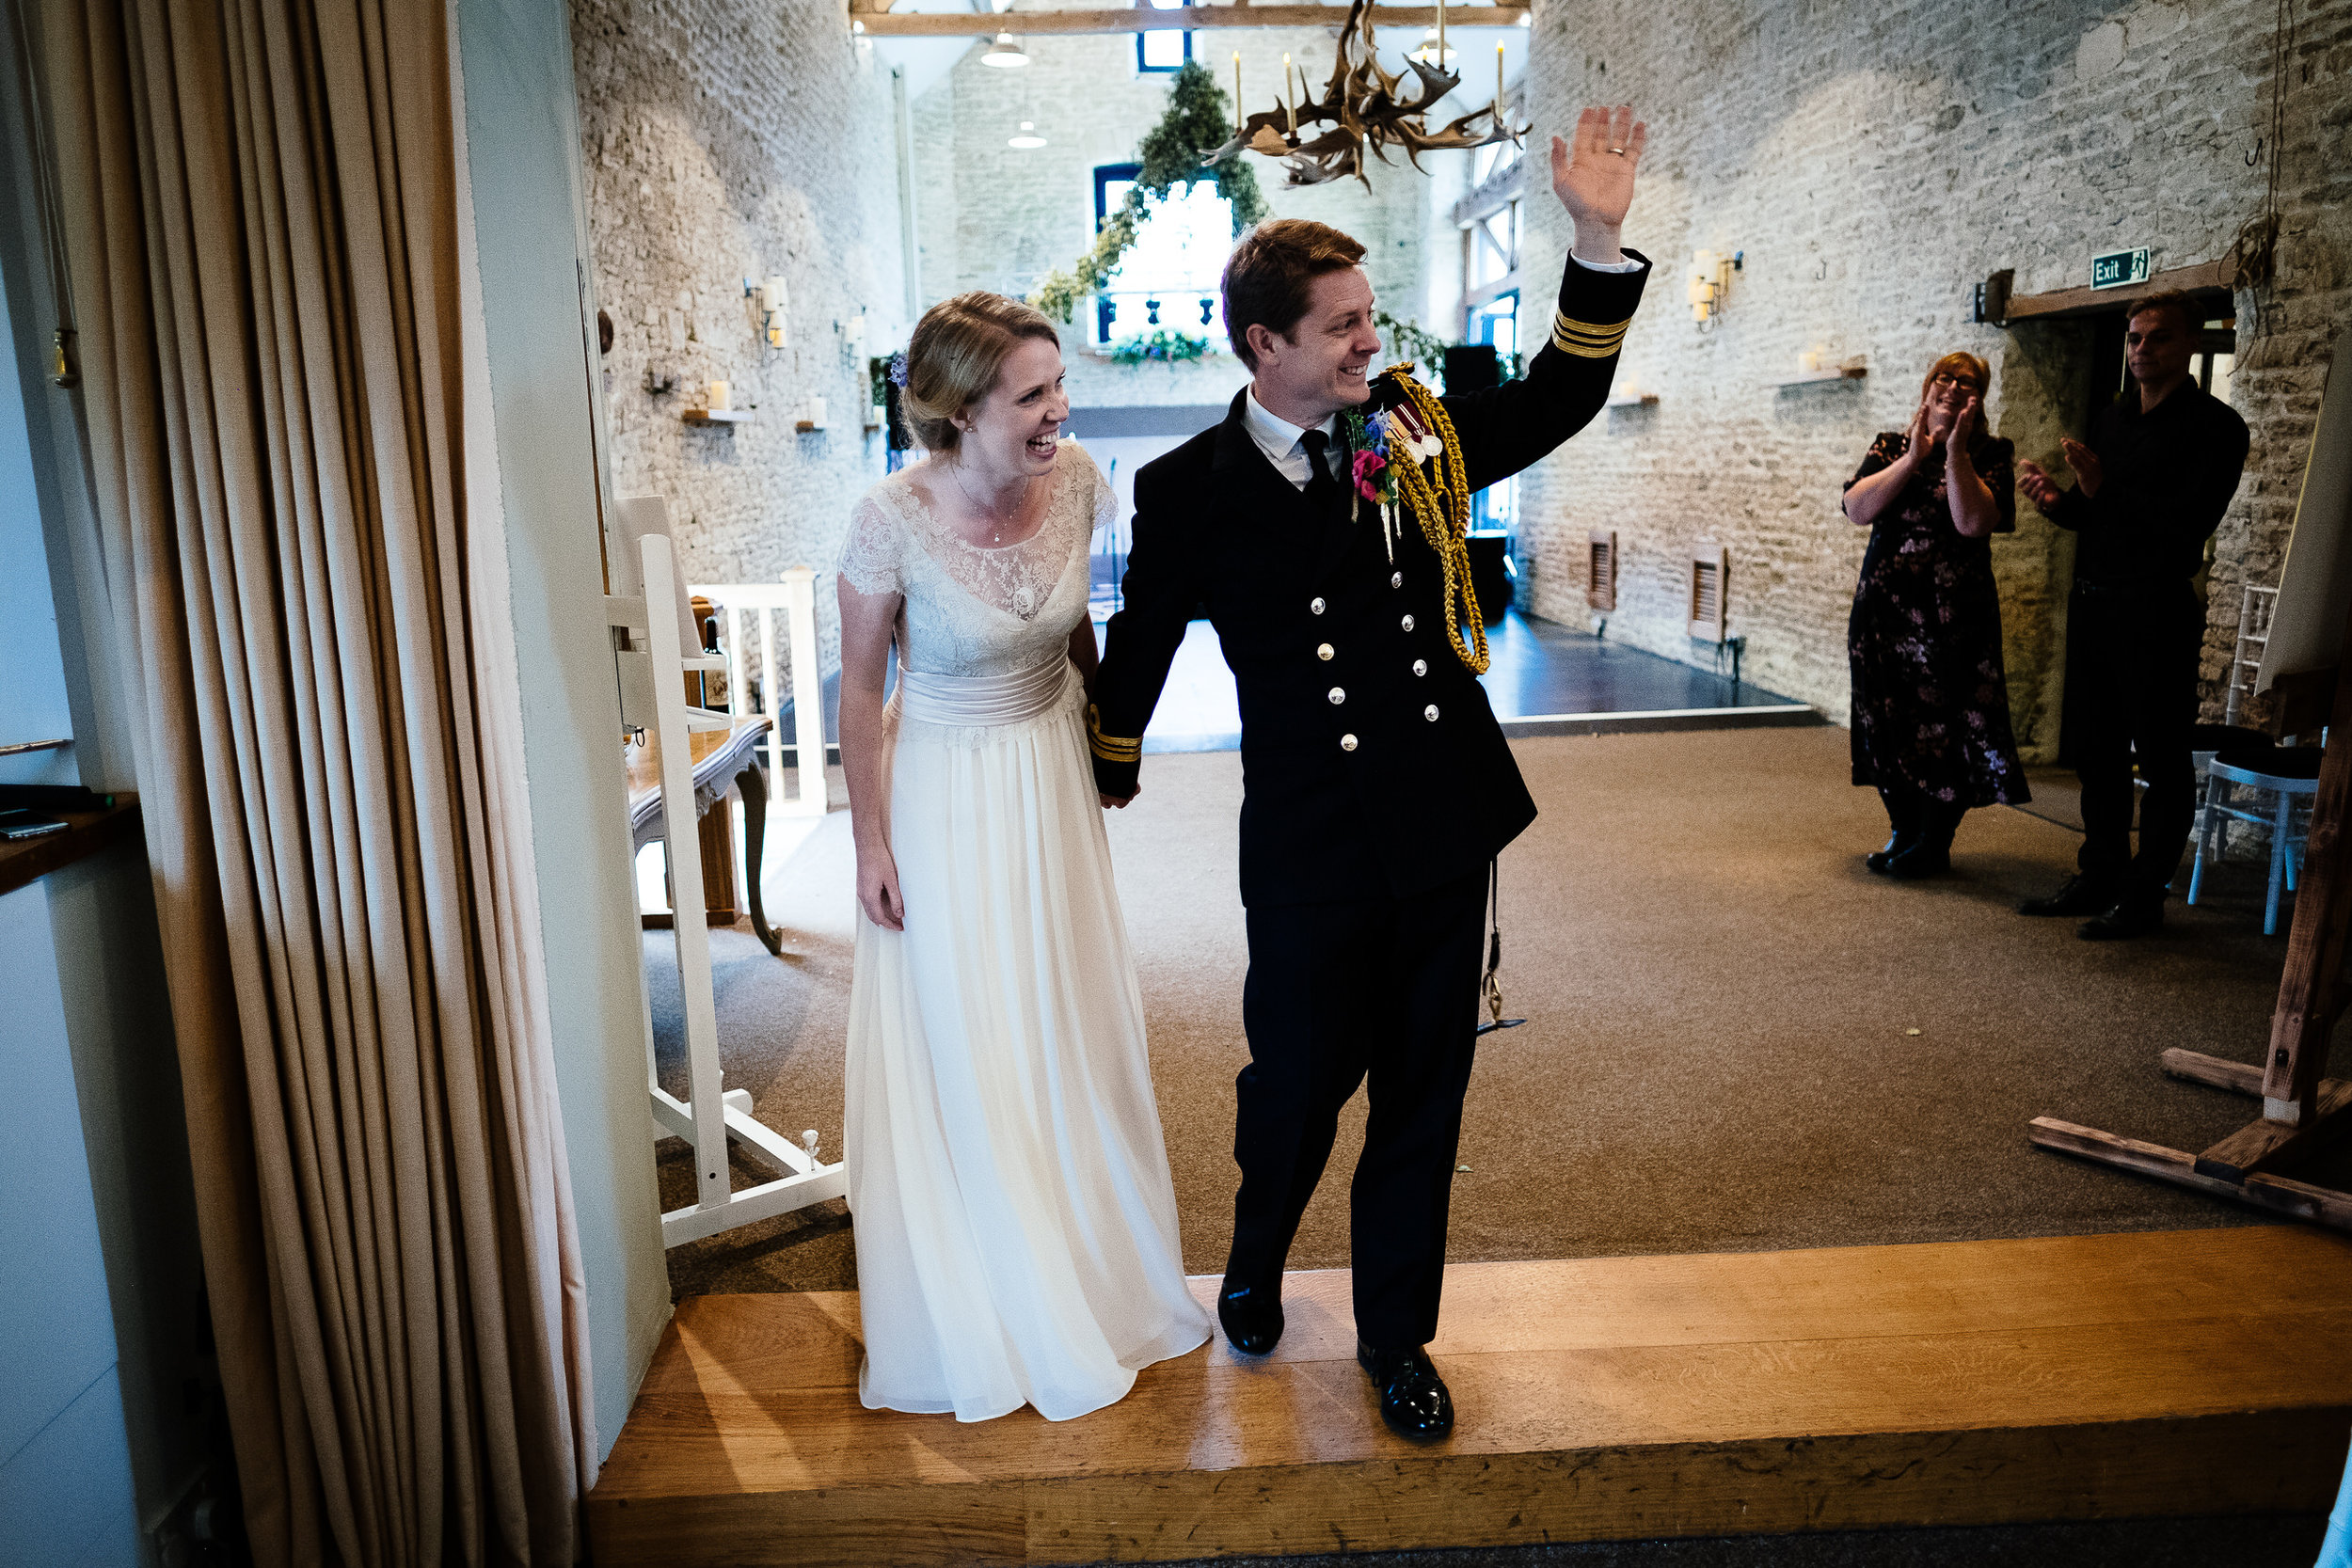 A bride and groom entering the room at a wedding at Merriscourt Wedding Venue, Oxfordshire